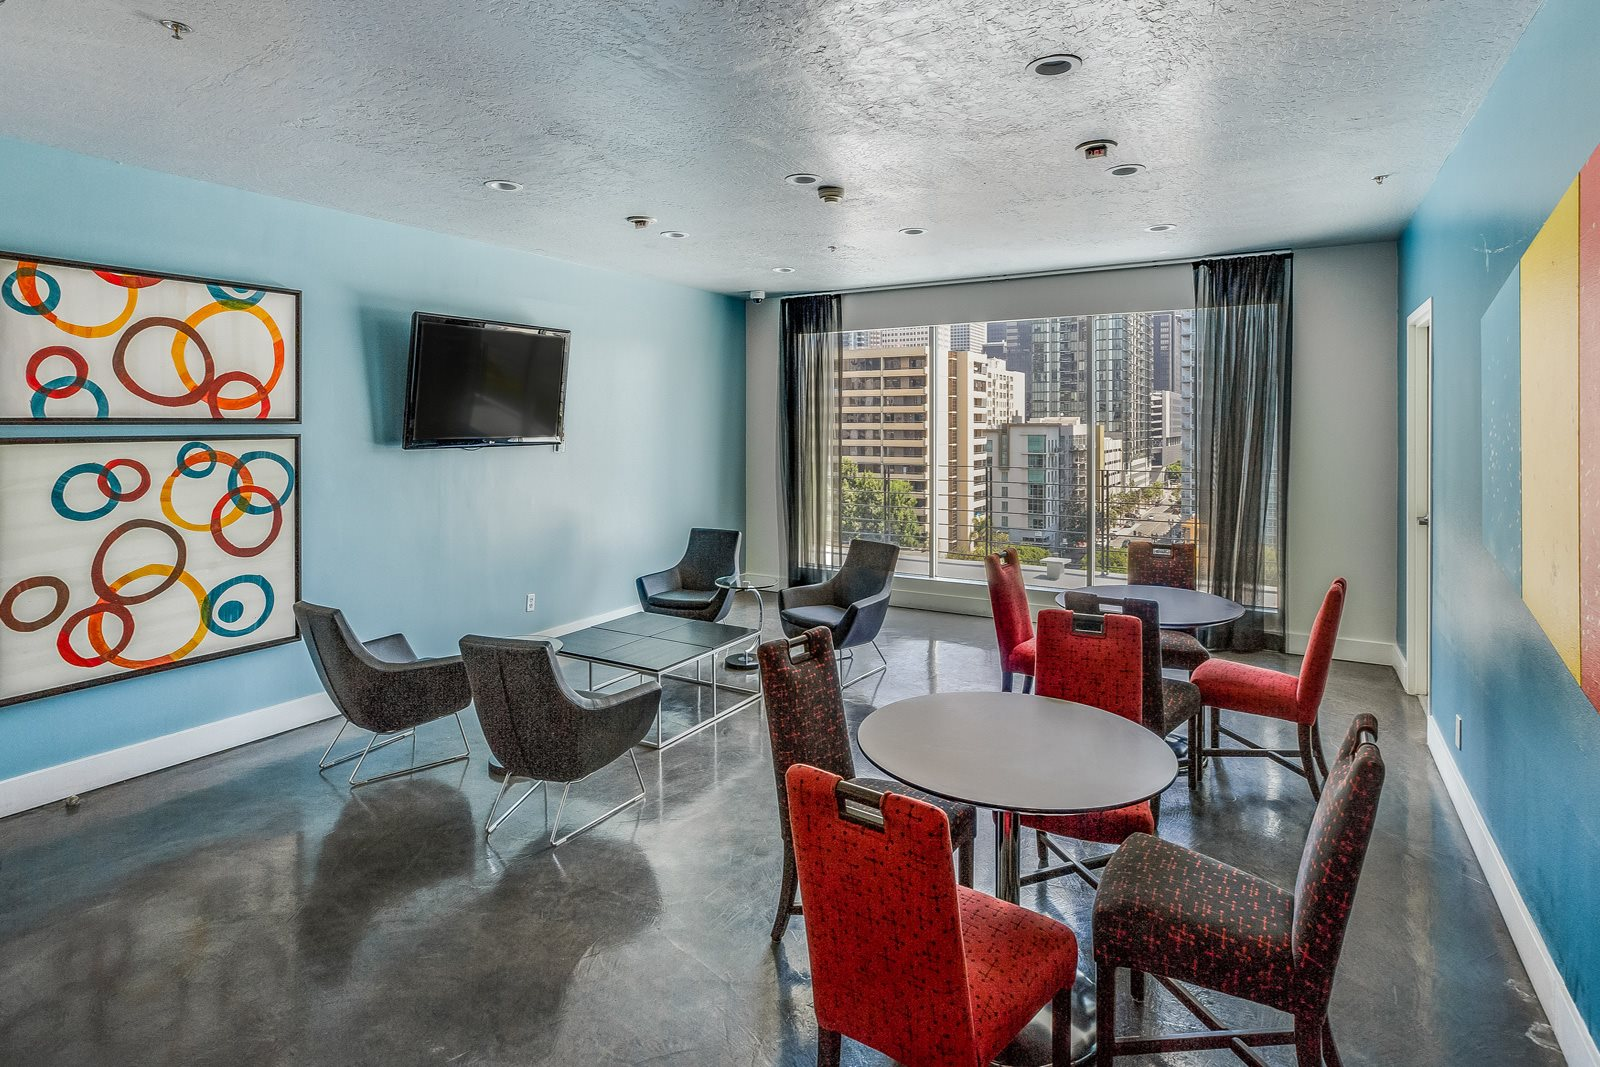 Sky Lounge with WiFi and Flat-Screen TV at Renaissance Tower, 501 W. Olympic Boulevard, CA